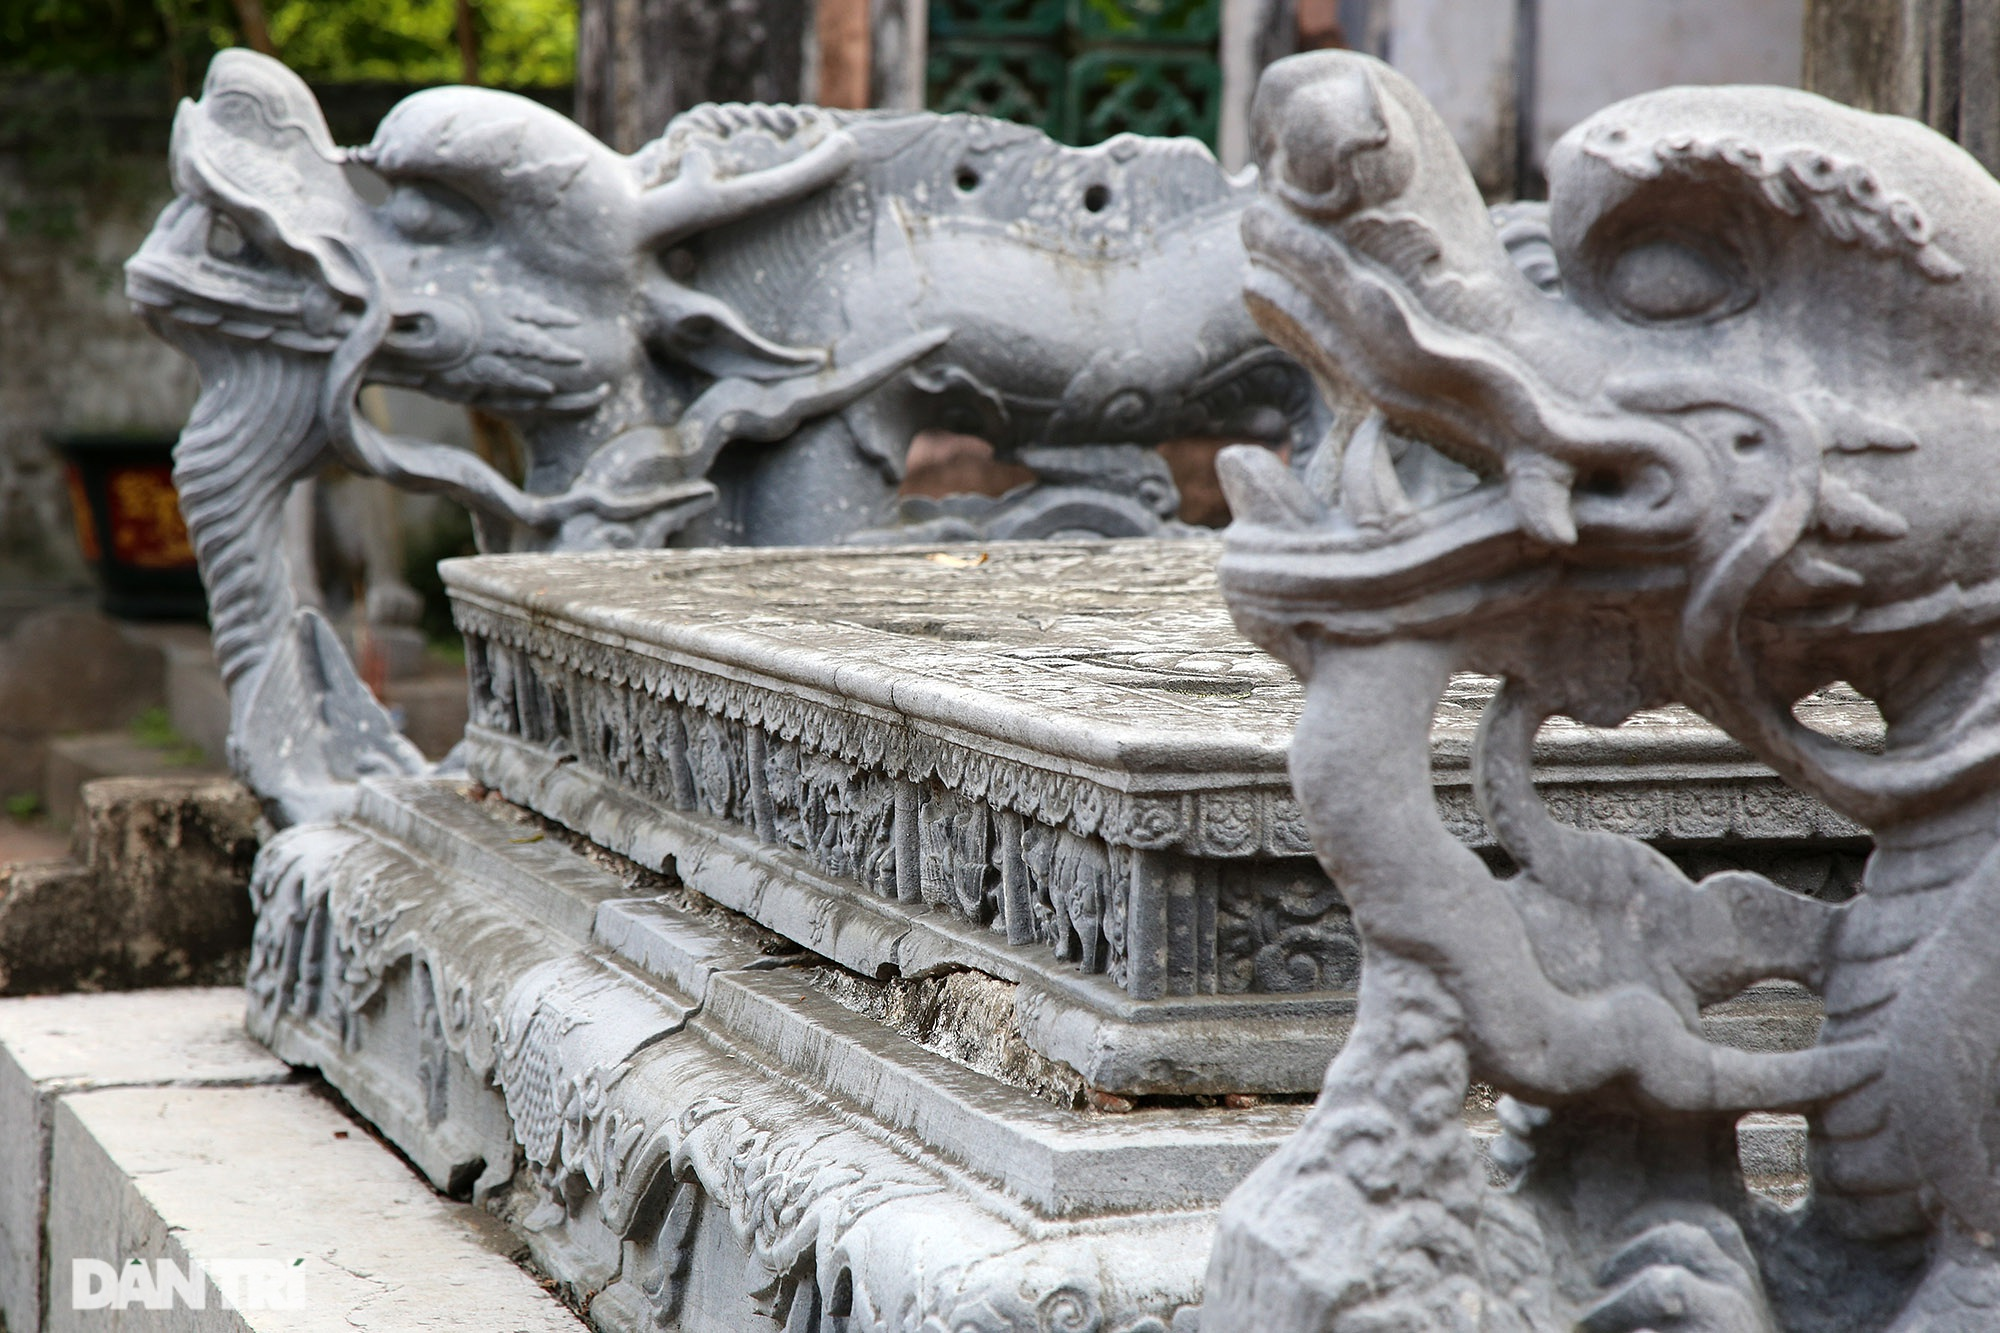 The unique stone dragon sieve in Vietnam carved the image of a buffalo, a mouse compared with a dragon - 11